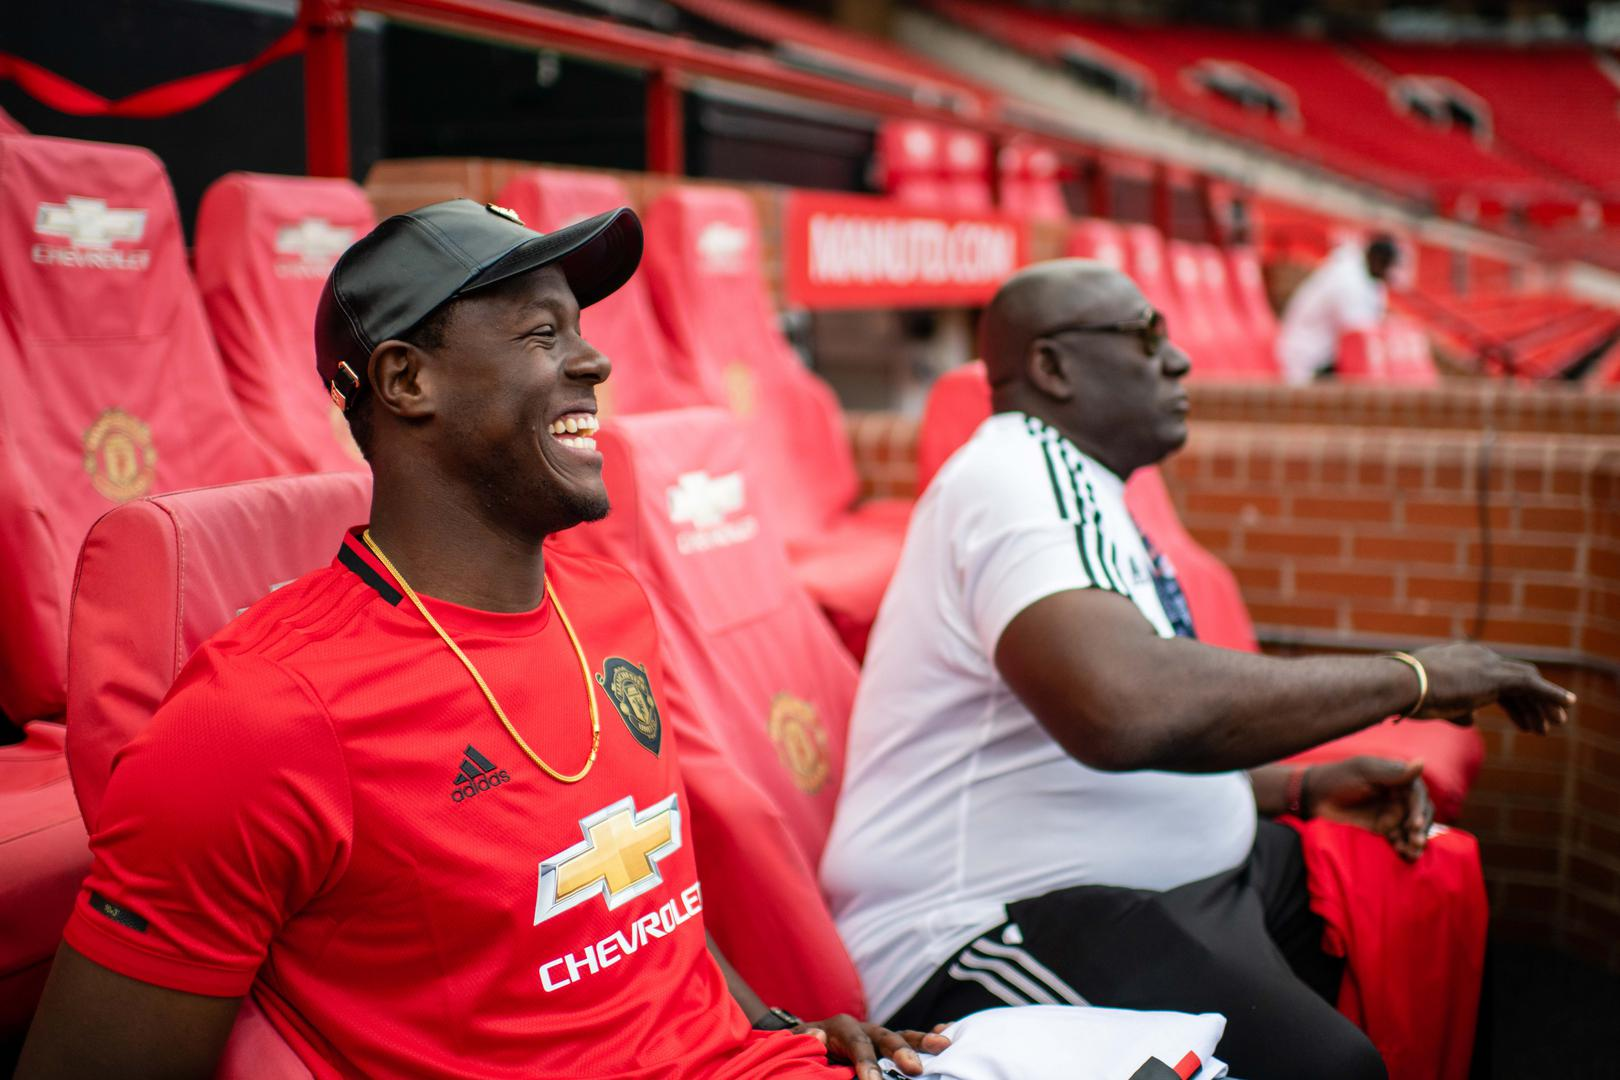 Carlos Brathwaite and Roddy Estwick sit in the Manchester United dugout during their tour of Old Trafford.